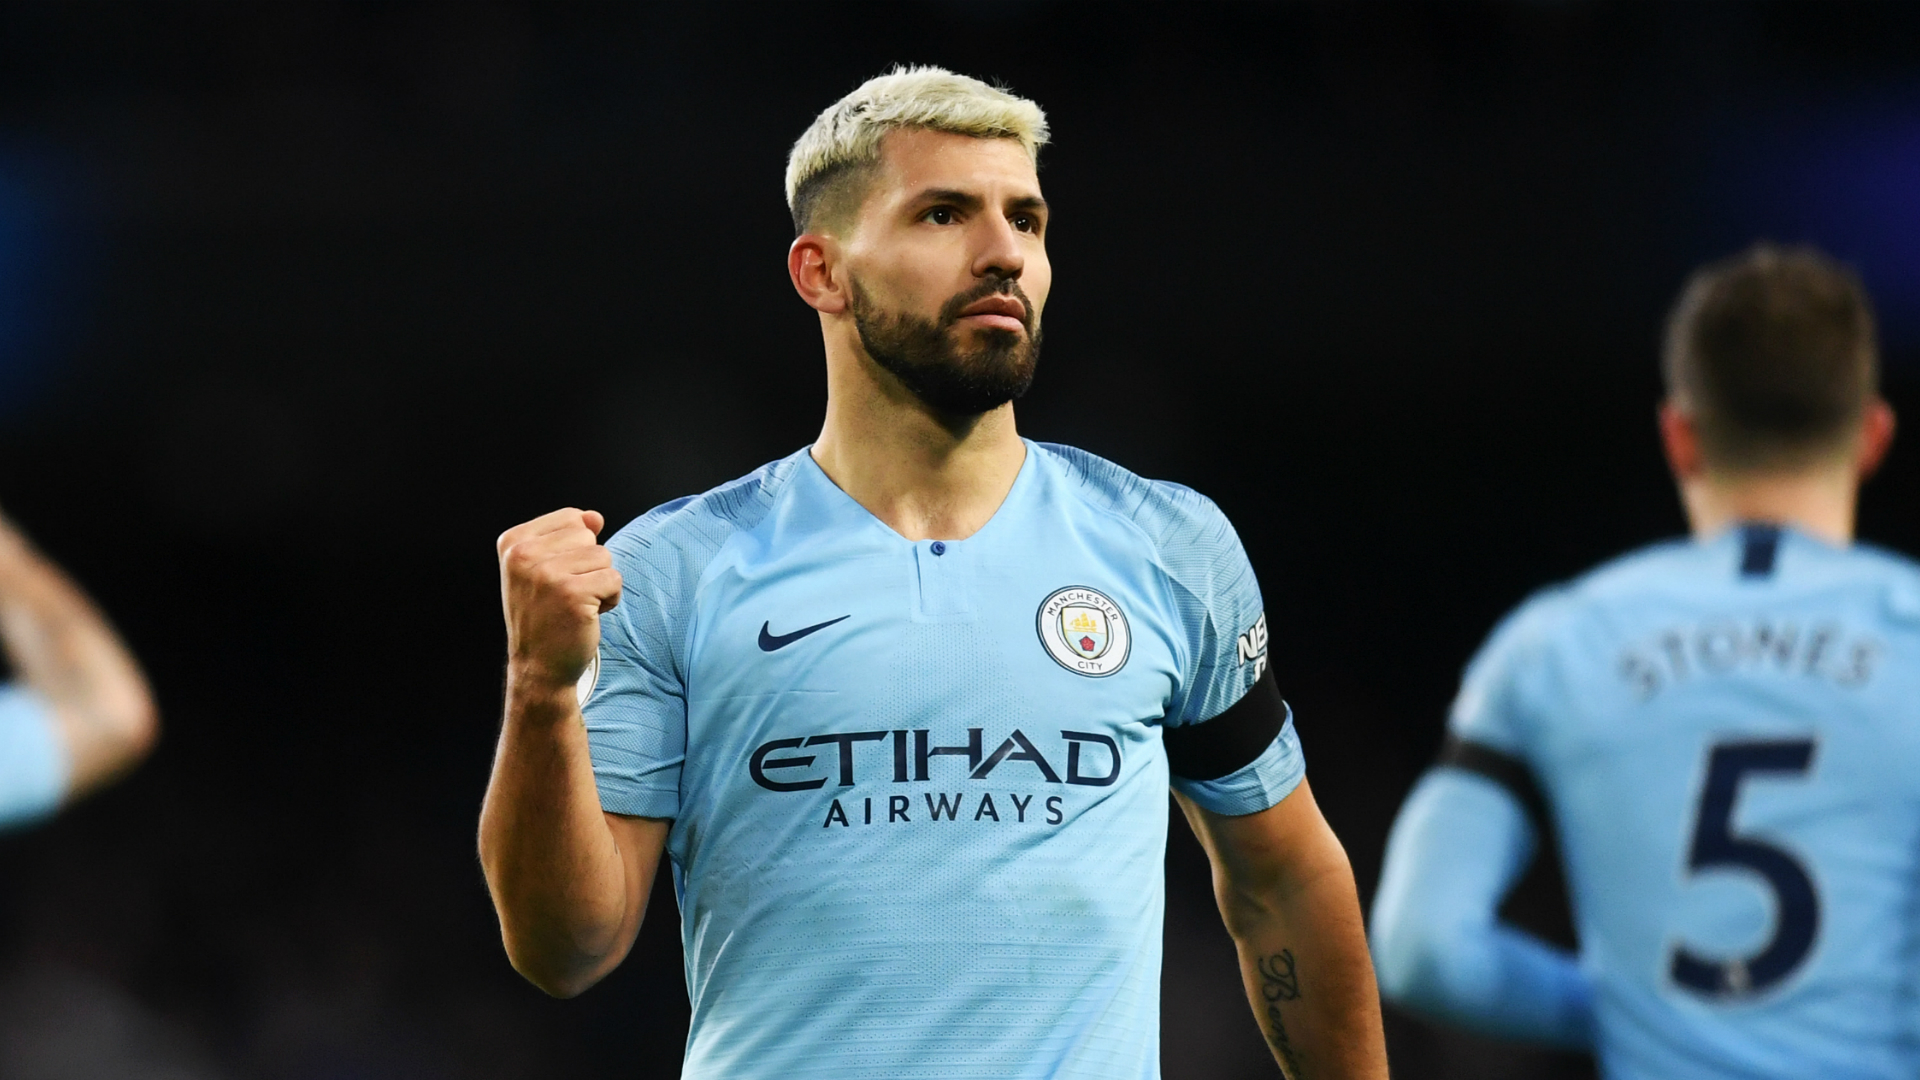 Following the announcement of the 2019-20 Premier League fixtures, we looked at some of the best numbers around the opening weekend.